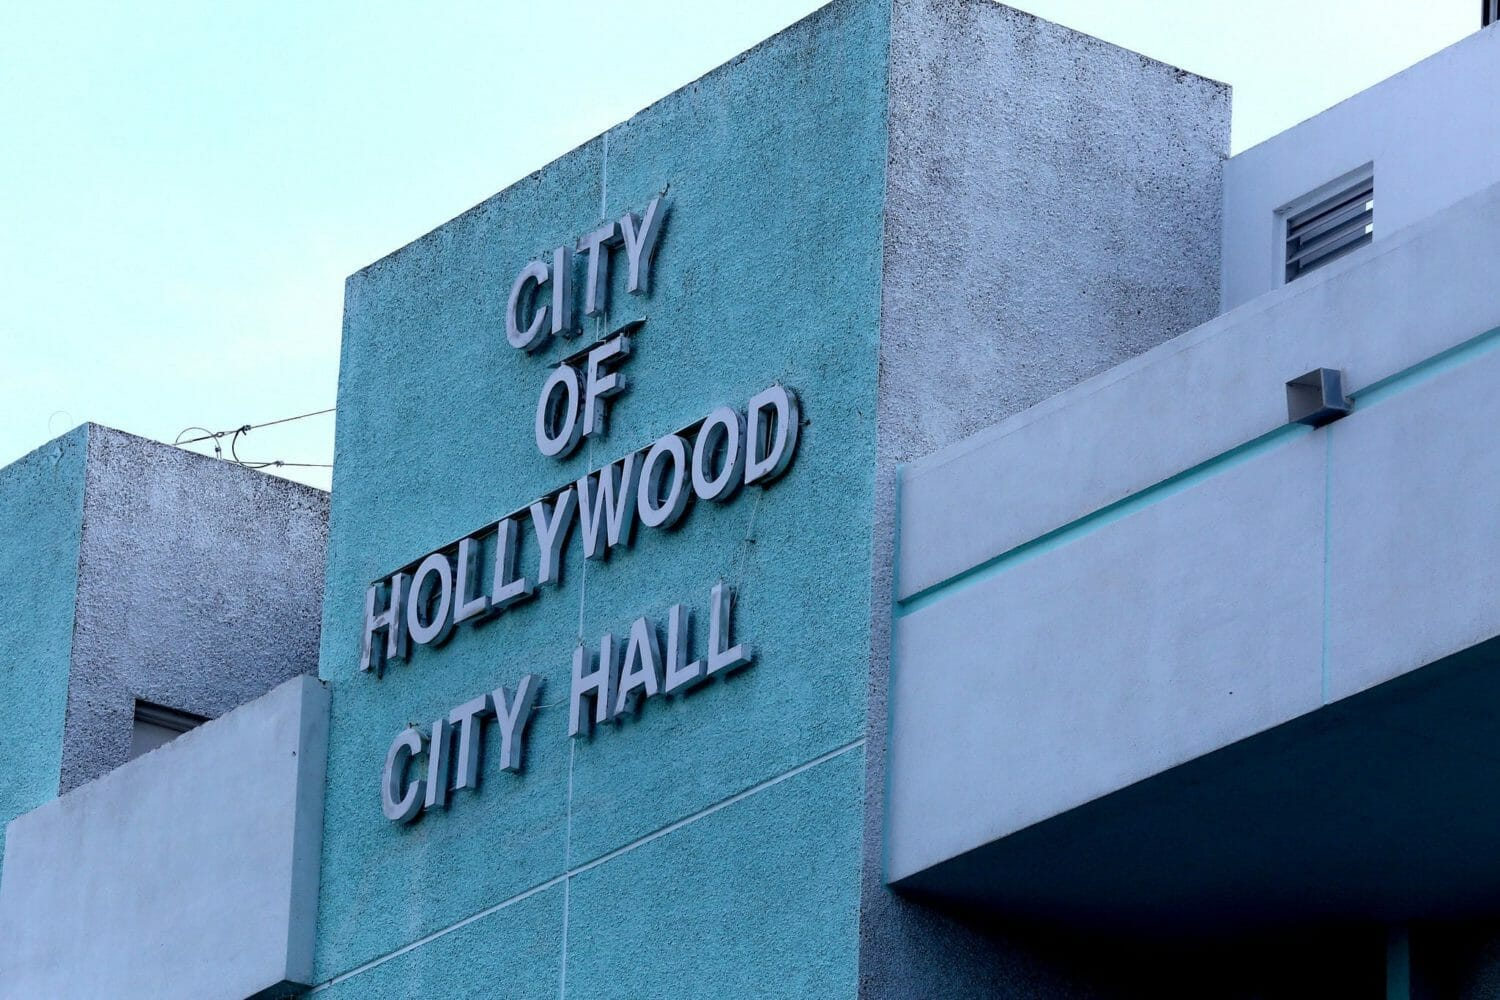 Infrastructure improvements to be made in Hollywood